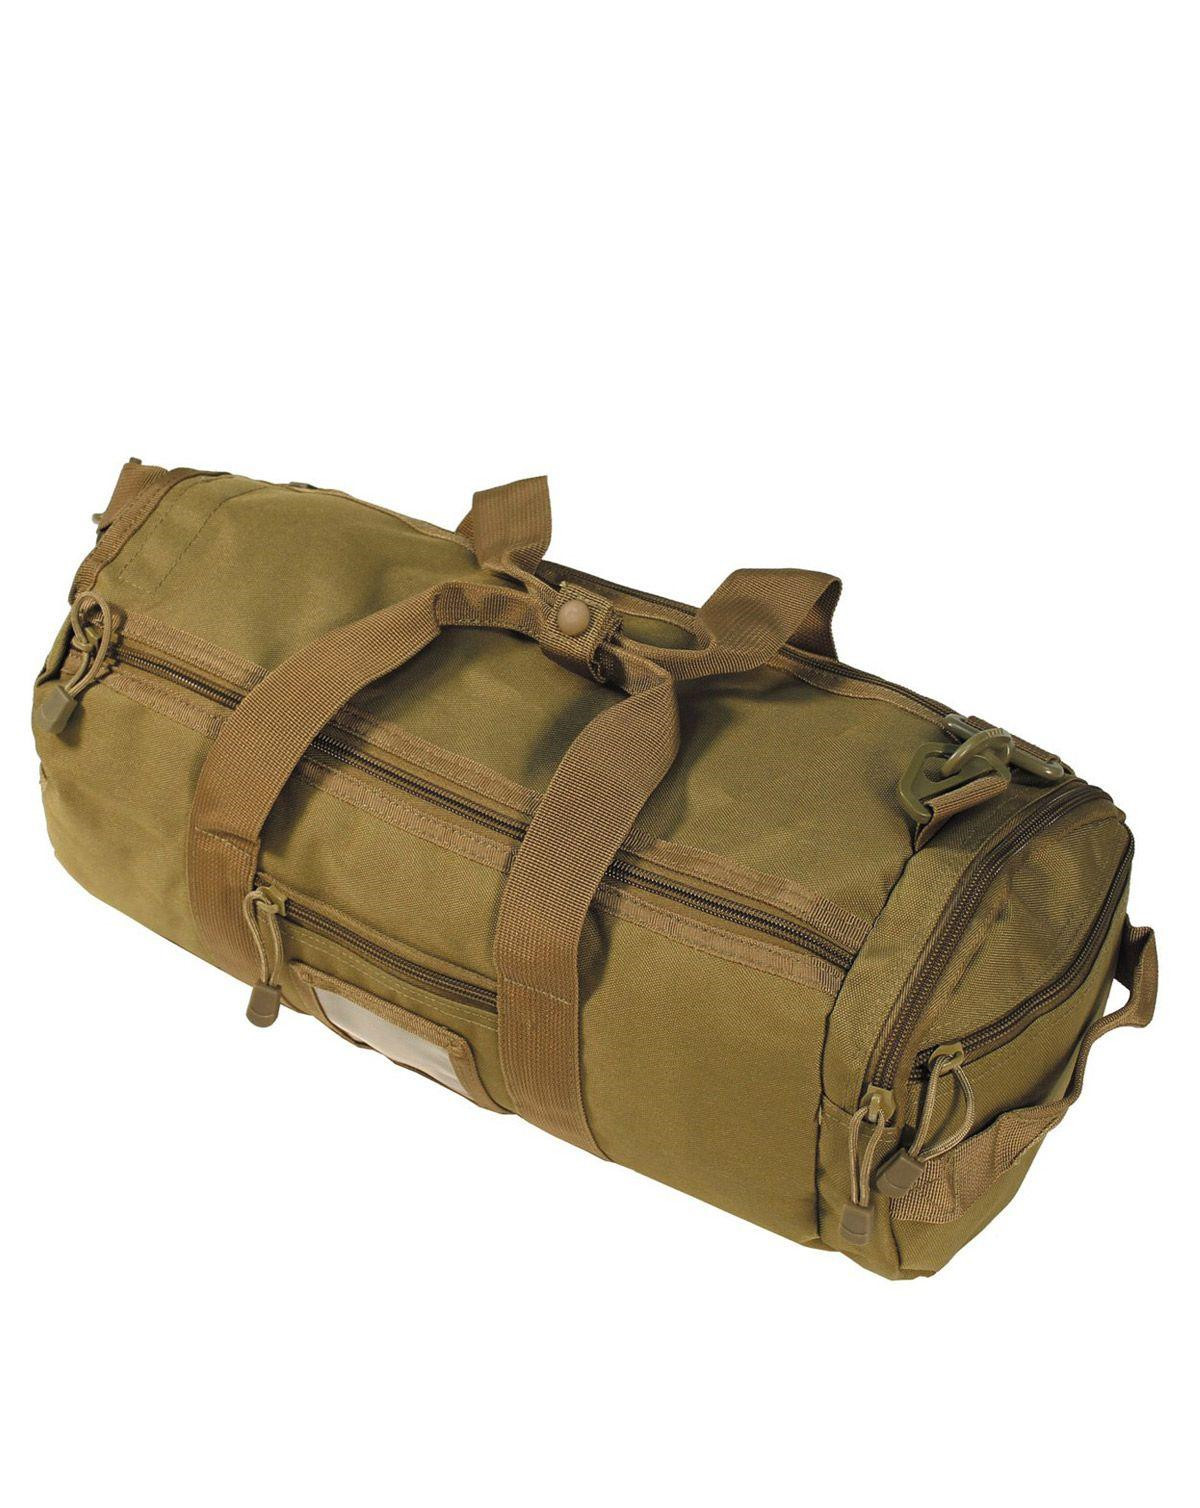 Image of   MFH MOLLE Duffel Bag (Coyote Brun, One Size)